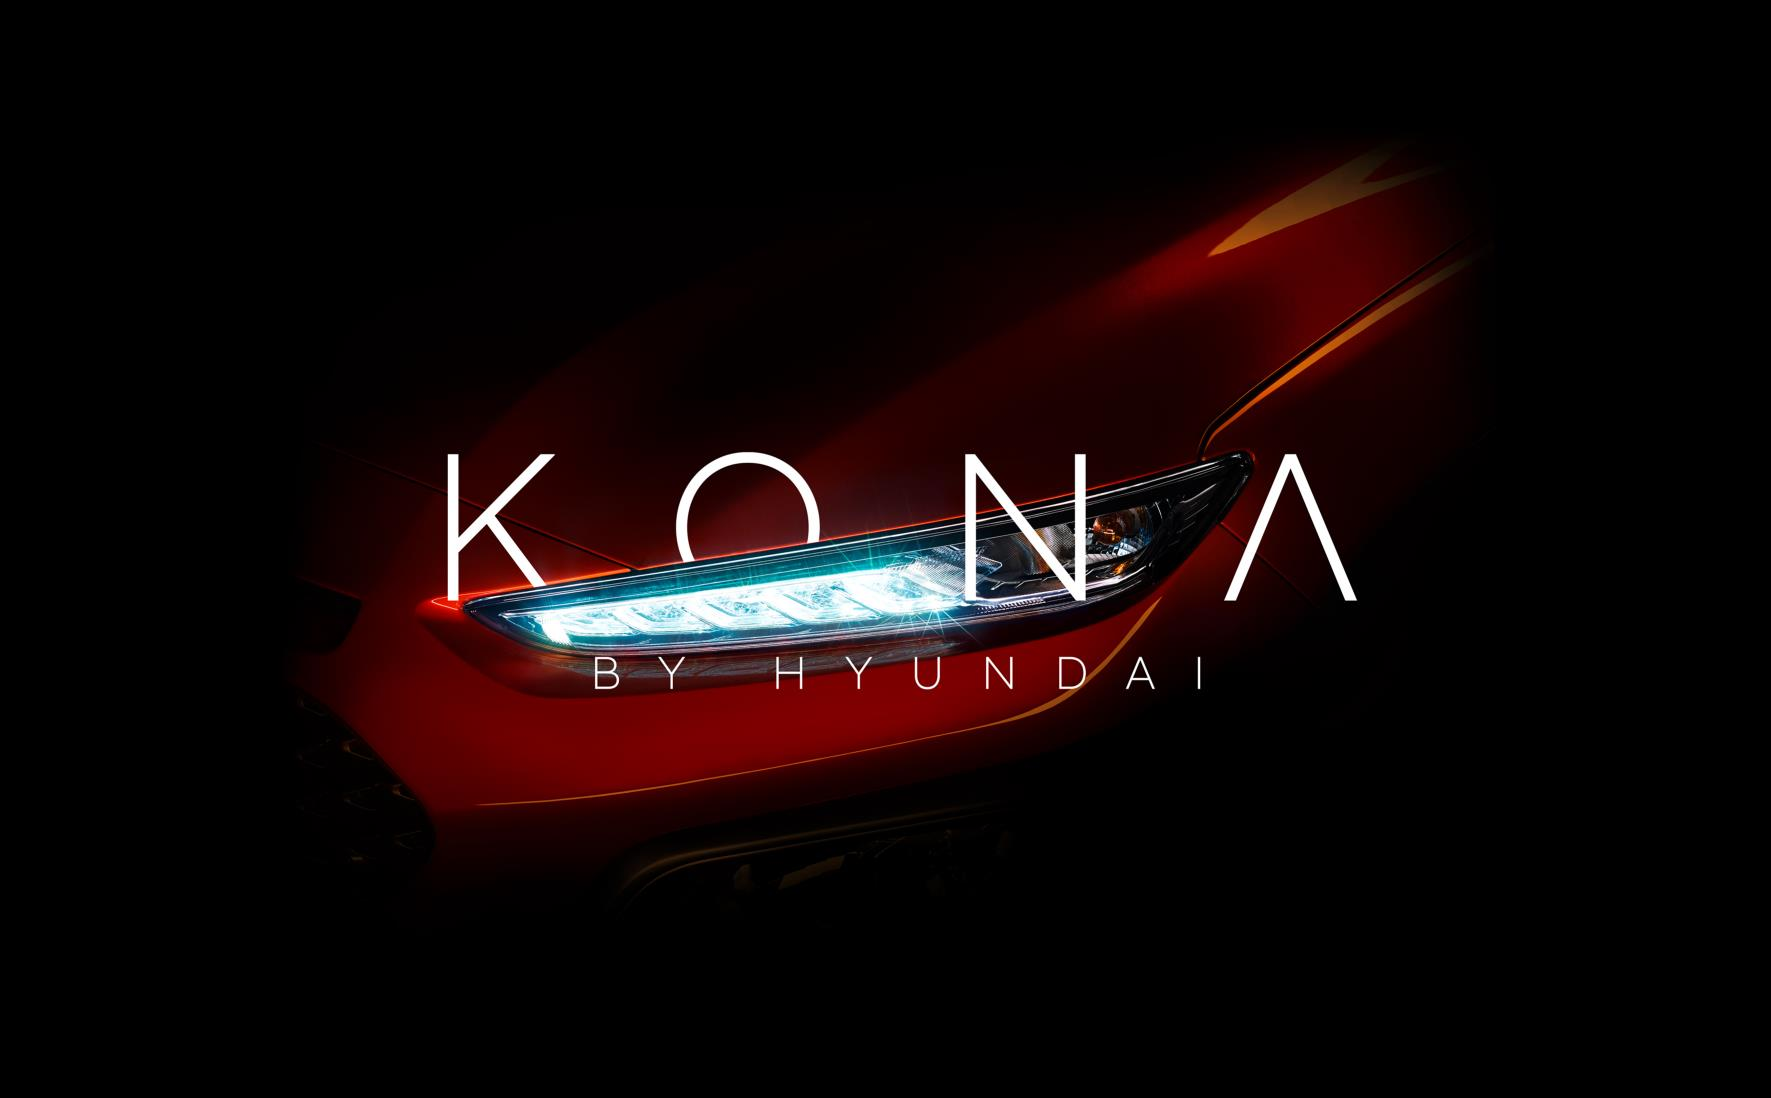 Hyundai Kona B Suv Is Named After A Hawaiian District